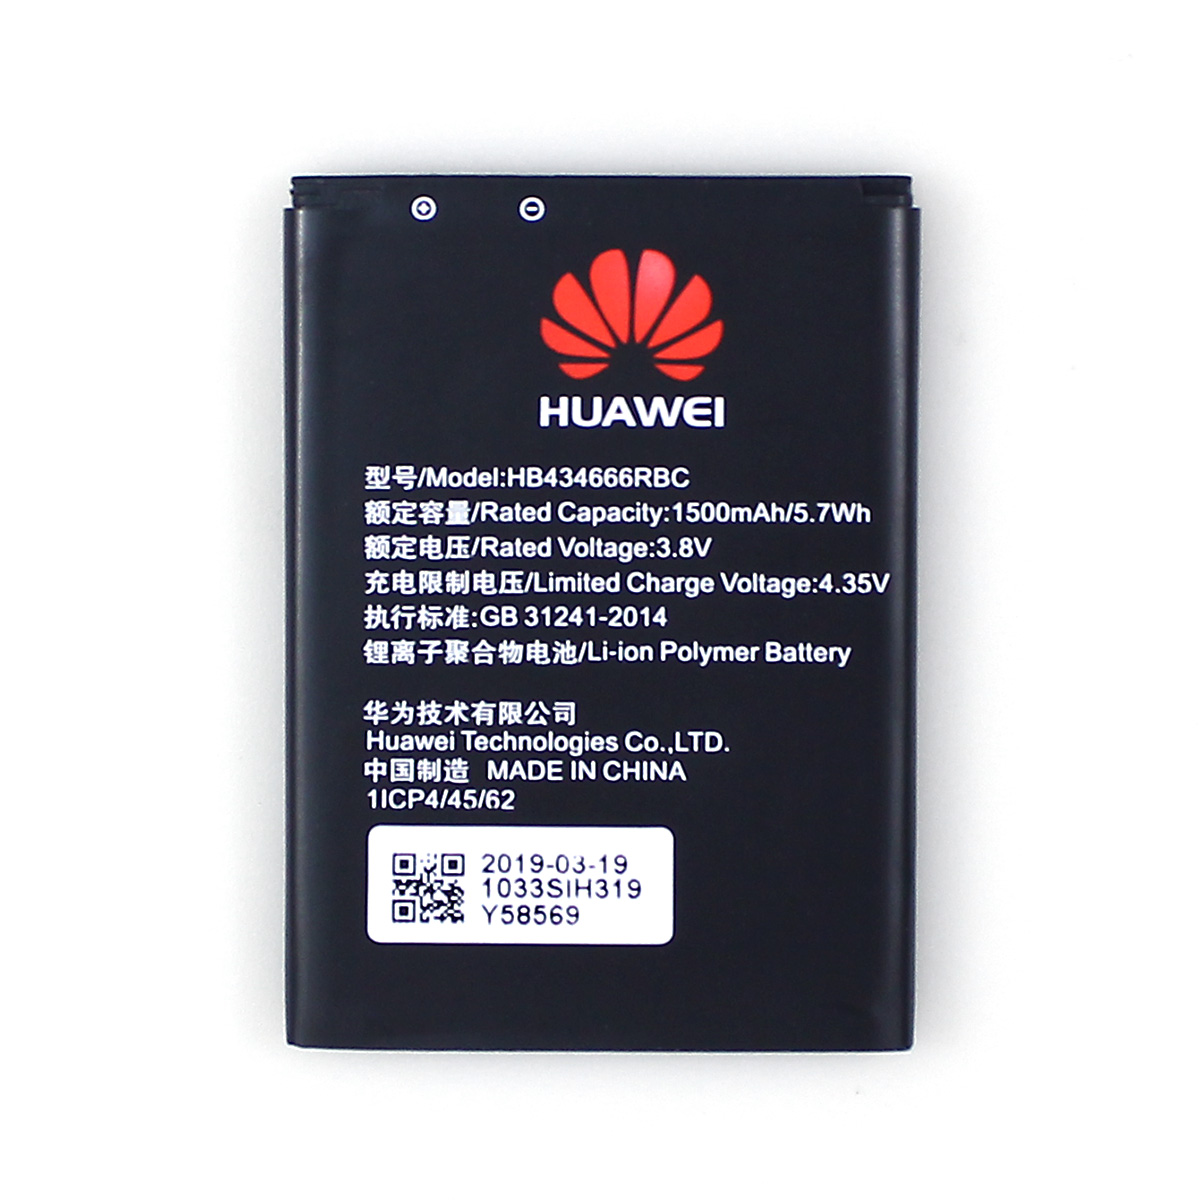 Huawei E5573 HB434666RBC Original Battery Wholesale